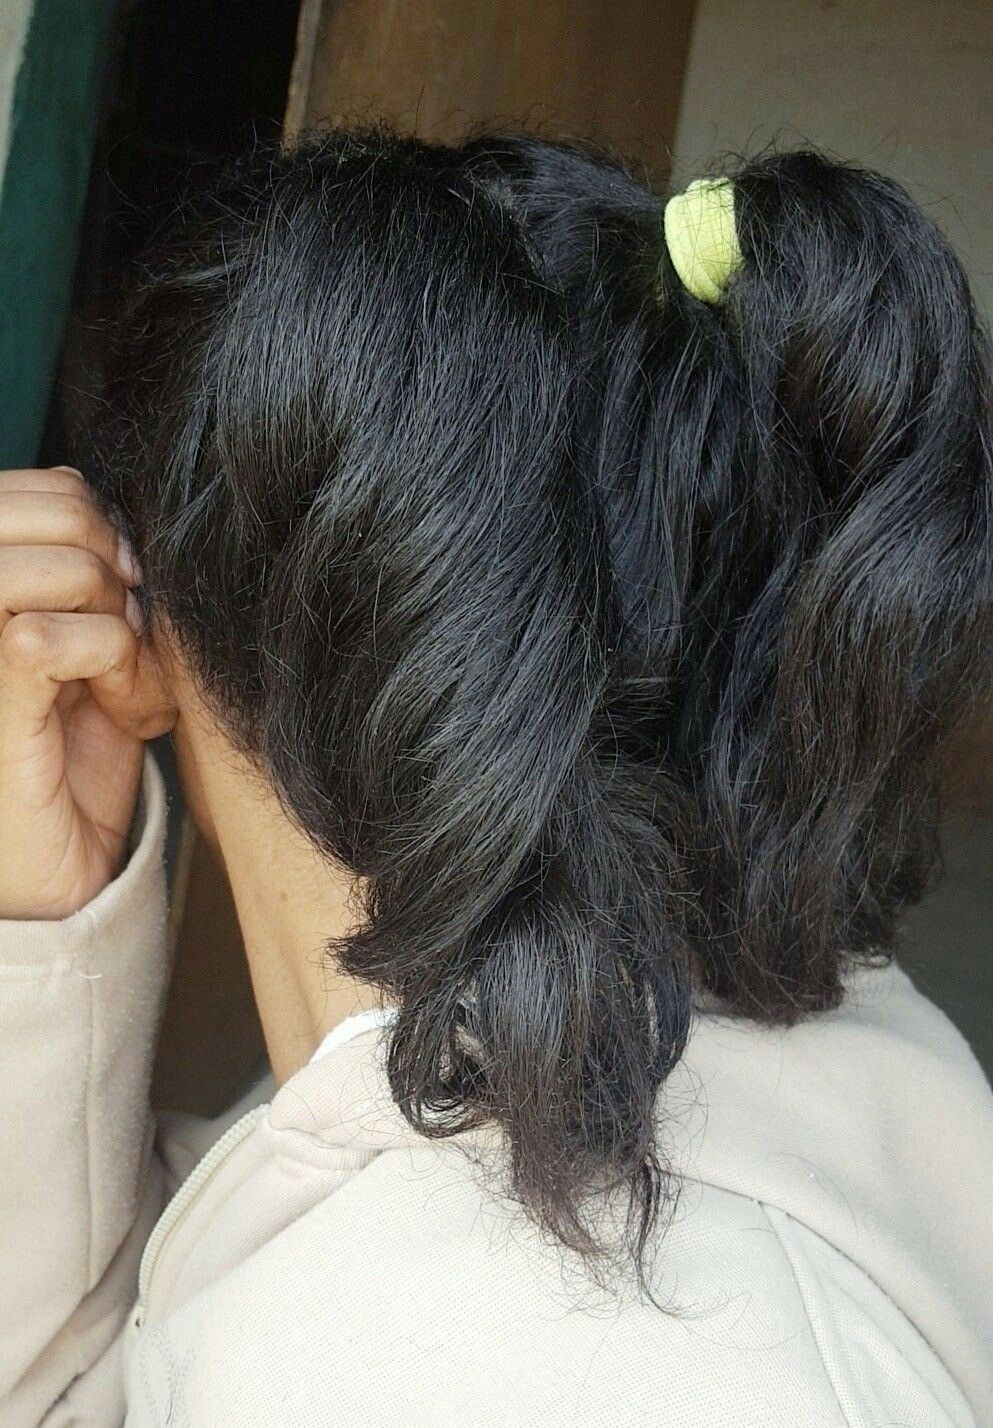 Two Ponytails Hairstyle Double Ponytail Pigtails Hair Hairstyle Style Ponytail Tie Tied Pigtails تسريحة شعر ذيل الحصان تسر Pigtails Easy Sewing Hair